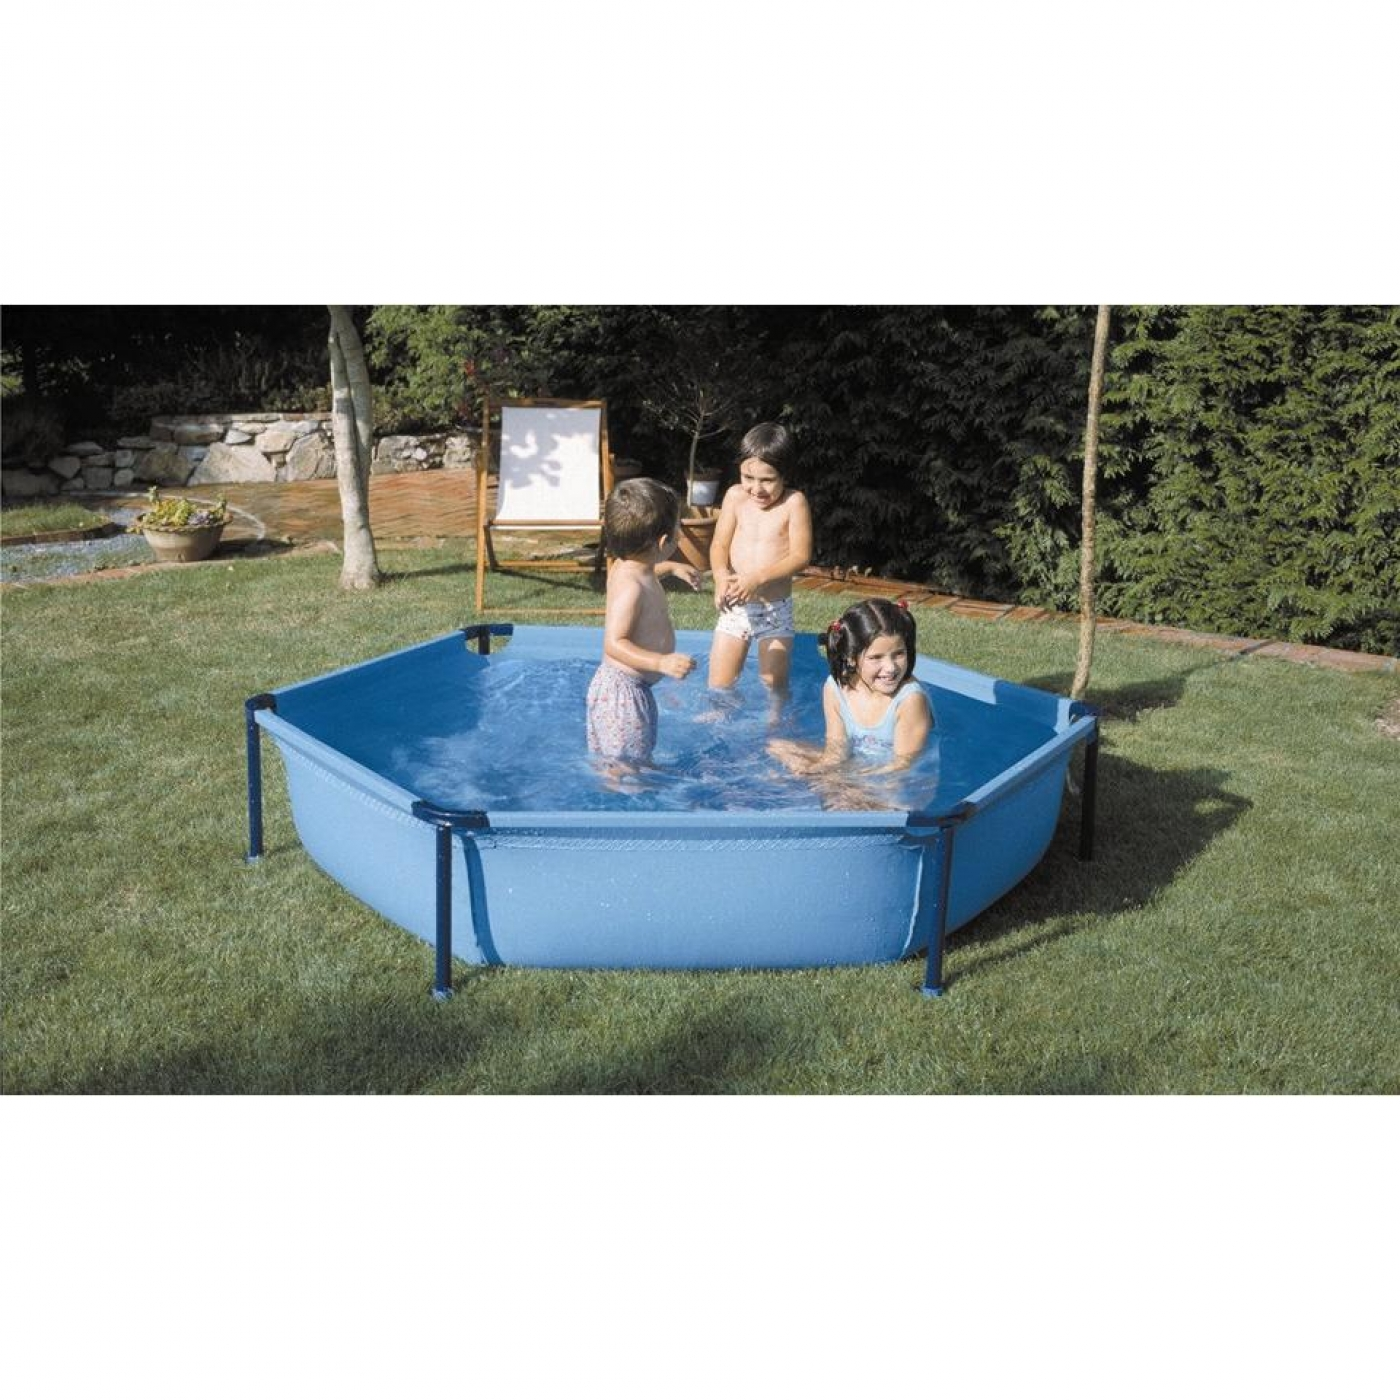 Piscina tubular hexagonal 215 x 45 cm gre por 55 00 en for Piscina intex cuadrada